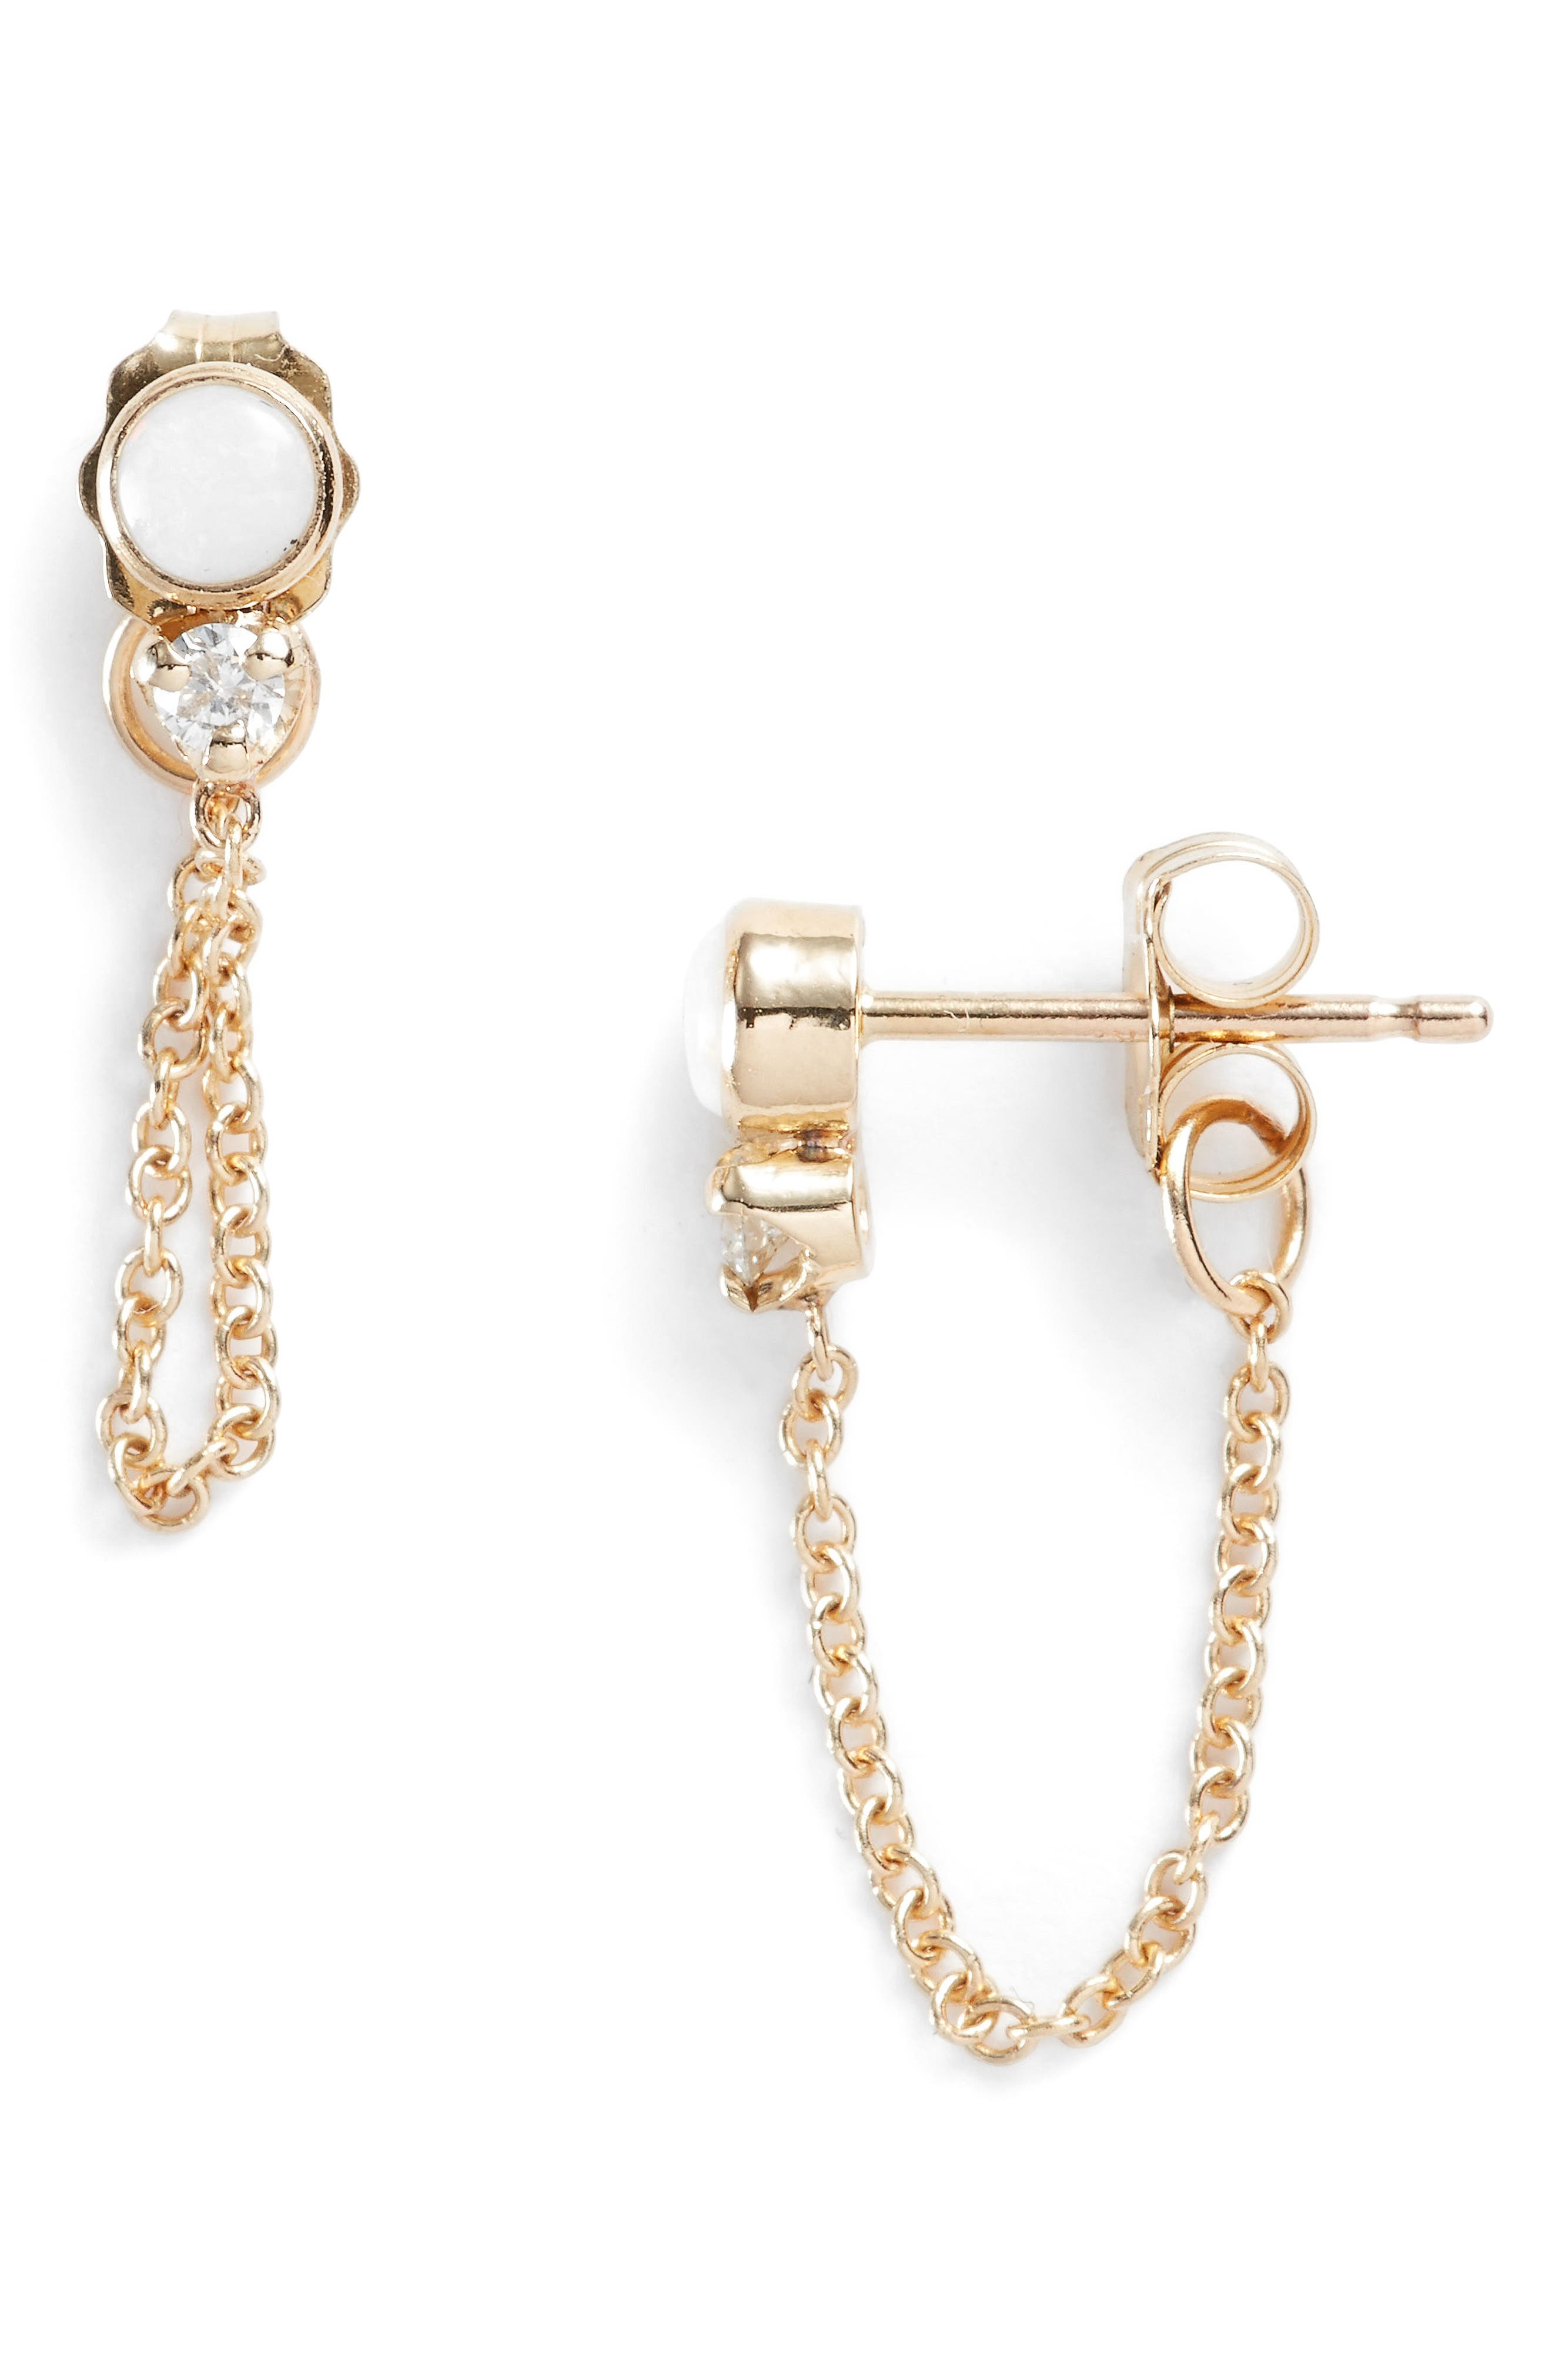 Zoe Chicco Diamond & Opal Front Back Earrings (Nordstrom Exclusive)